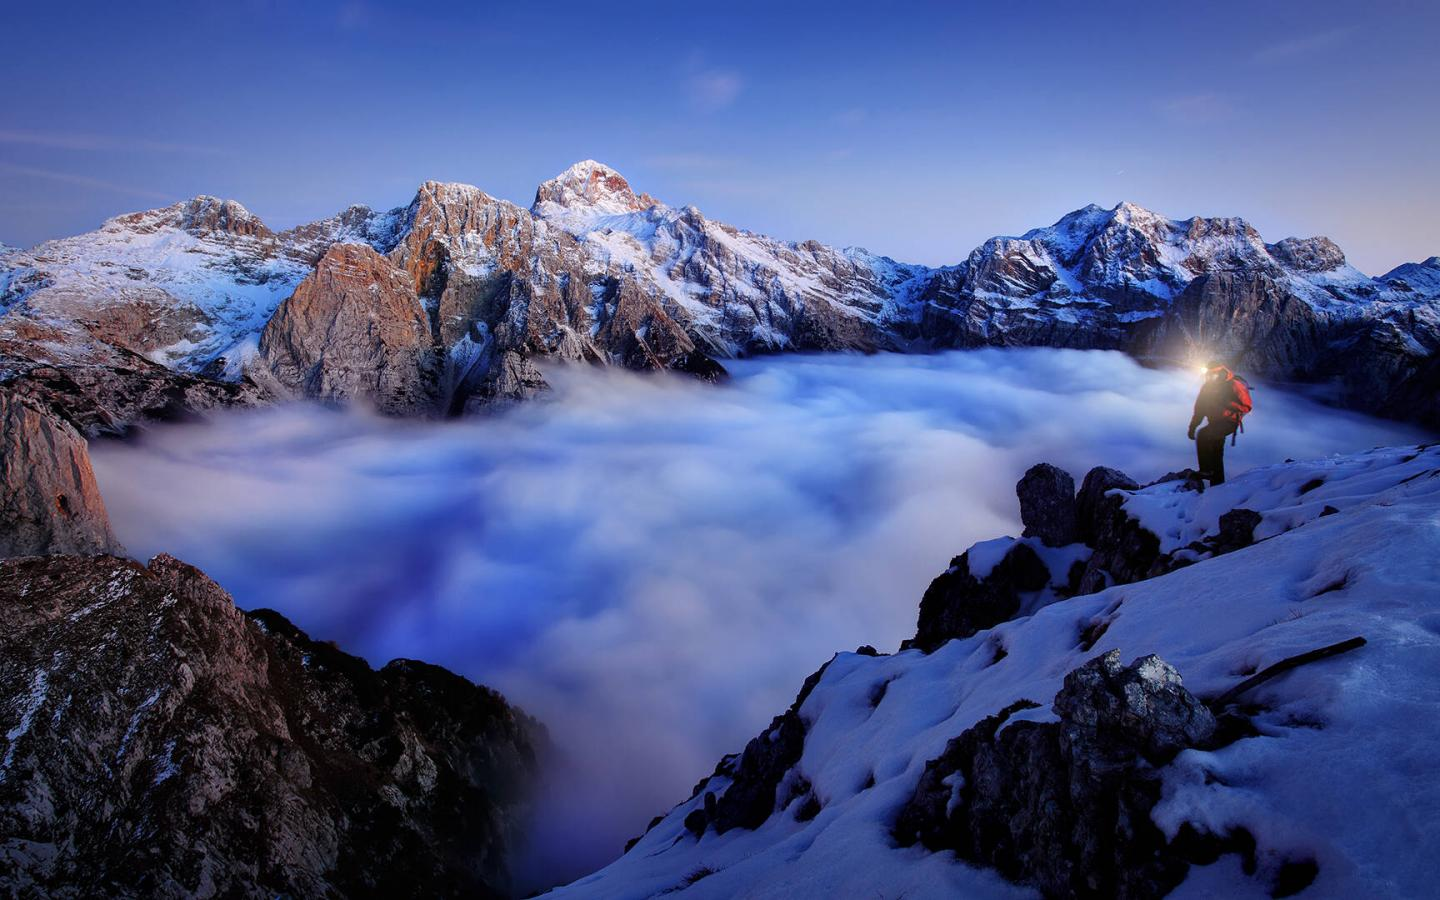 1440x900 - Mountaineering Wallpapers 35